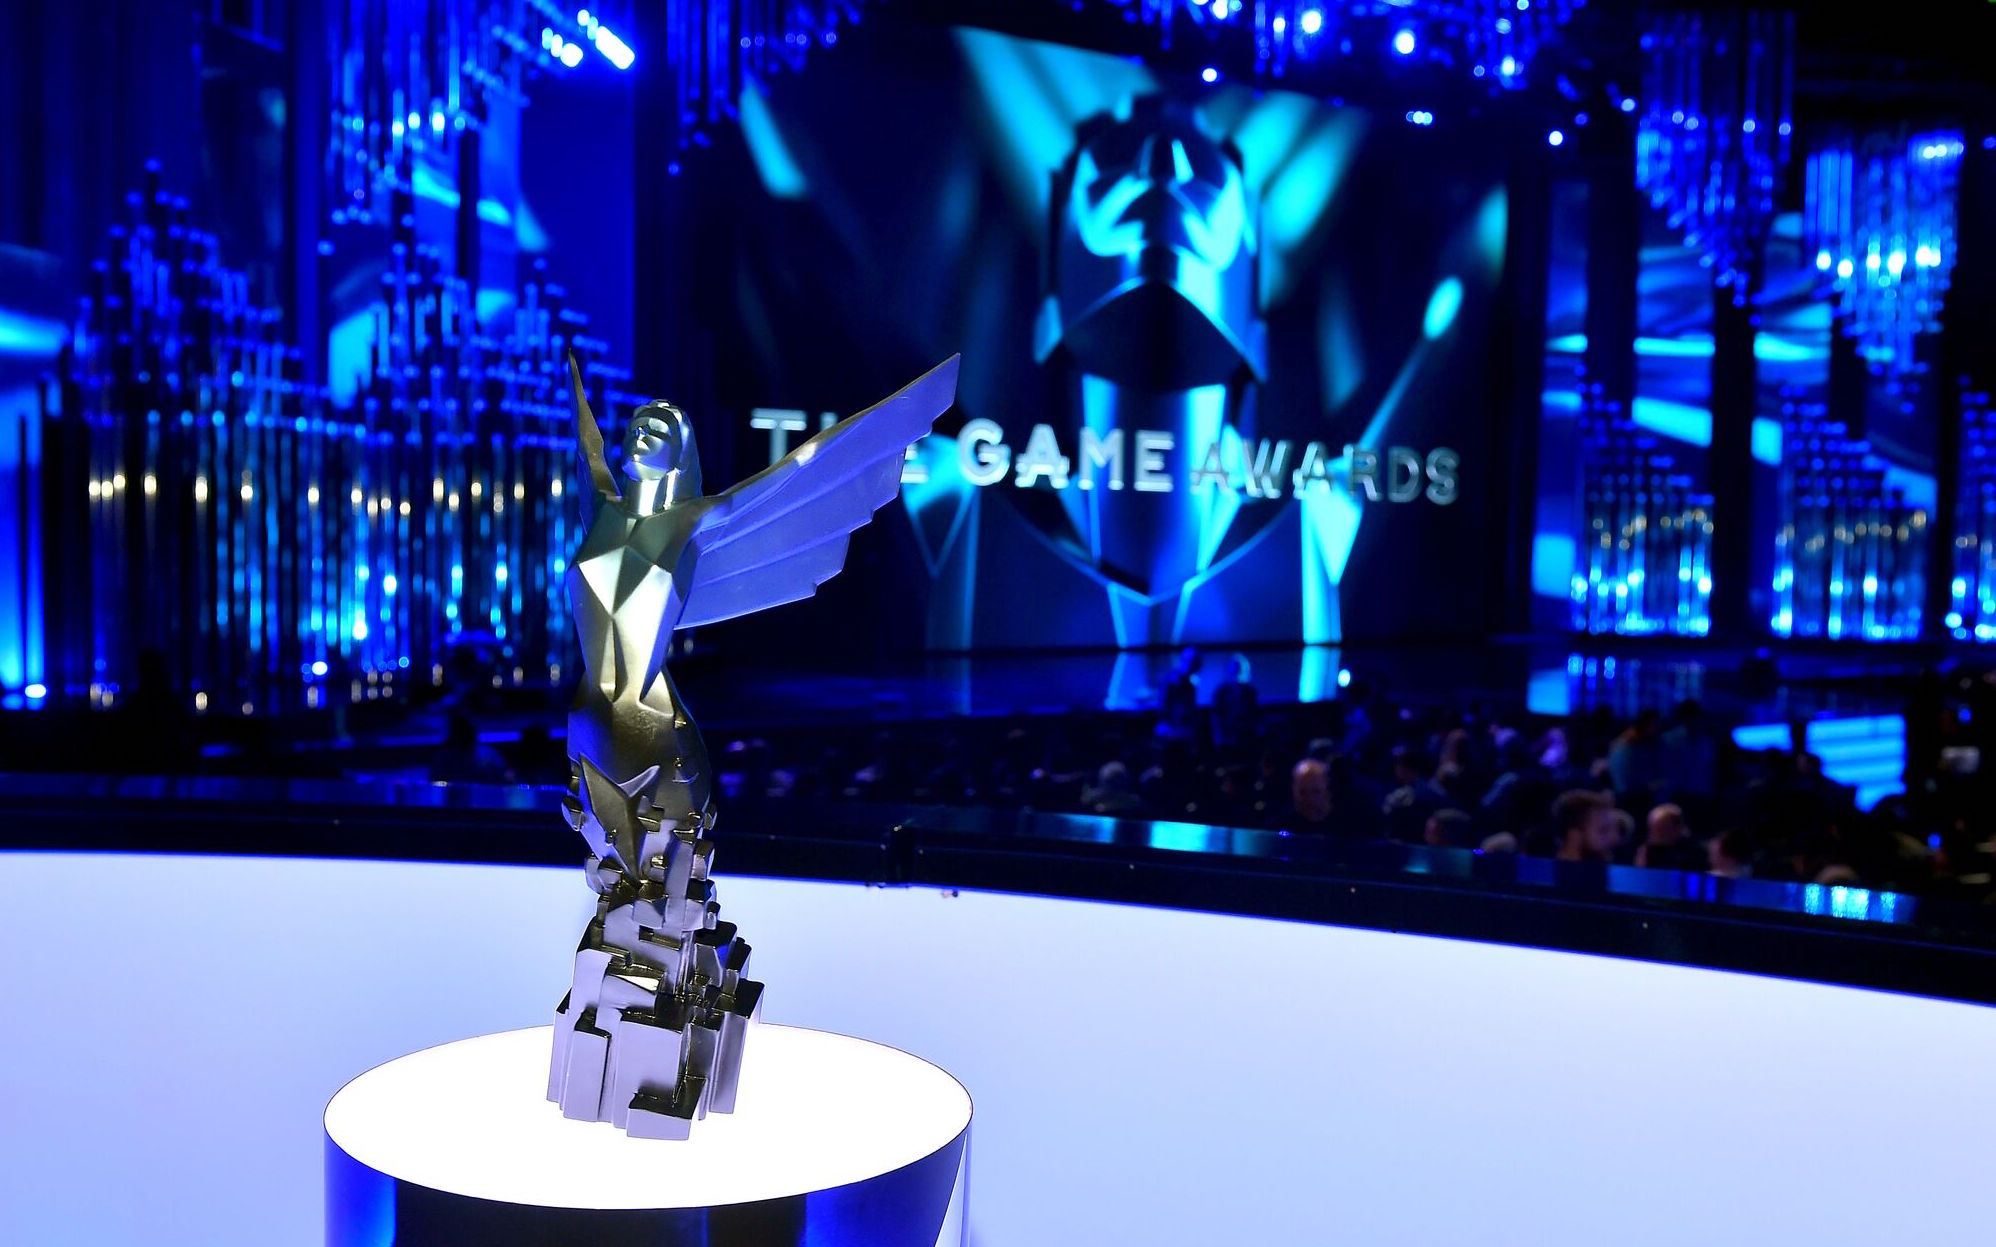 A photo of a statue at The Game Awards